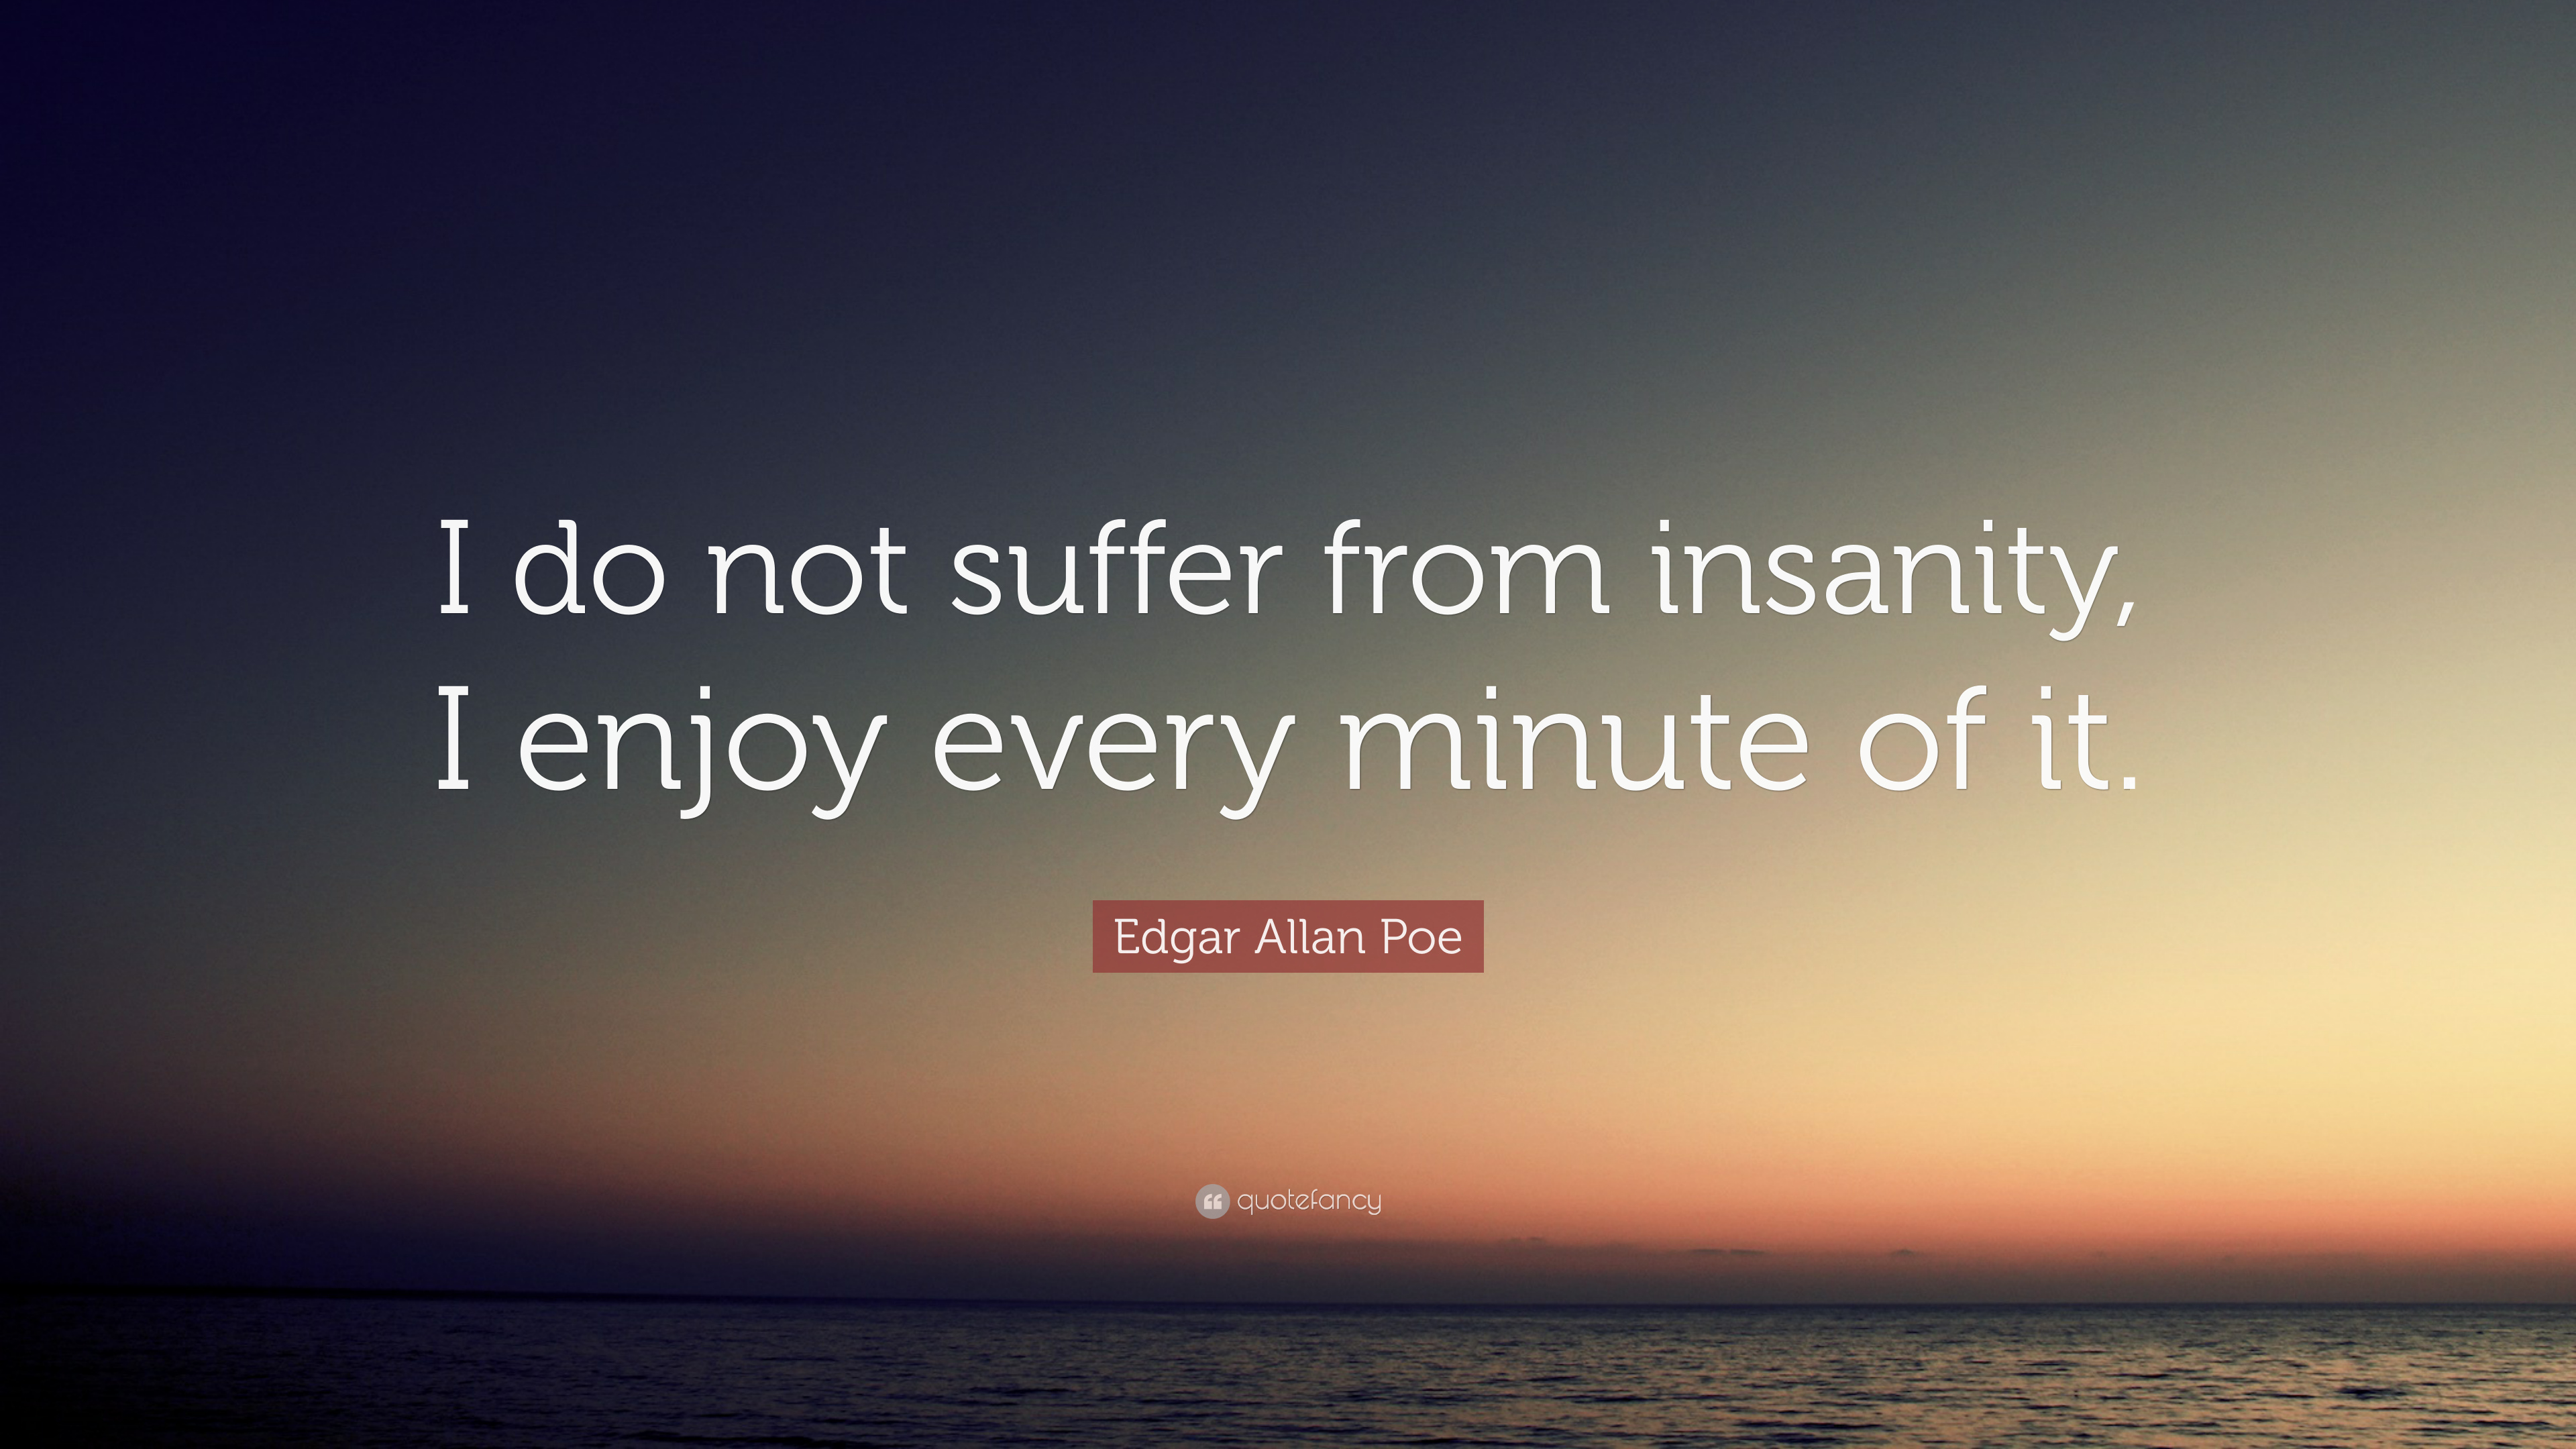 edgar allan poe quote ldquo i do not suffer from insanity i enjoy edgar allan poe quote ldquoi do not suffer from insanity i enjoy every